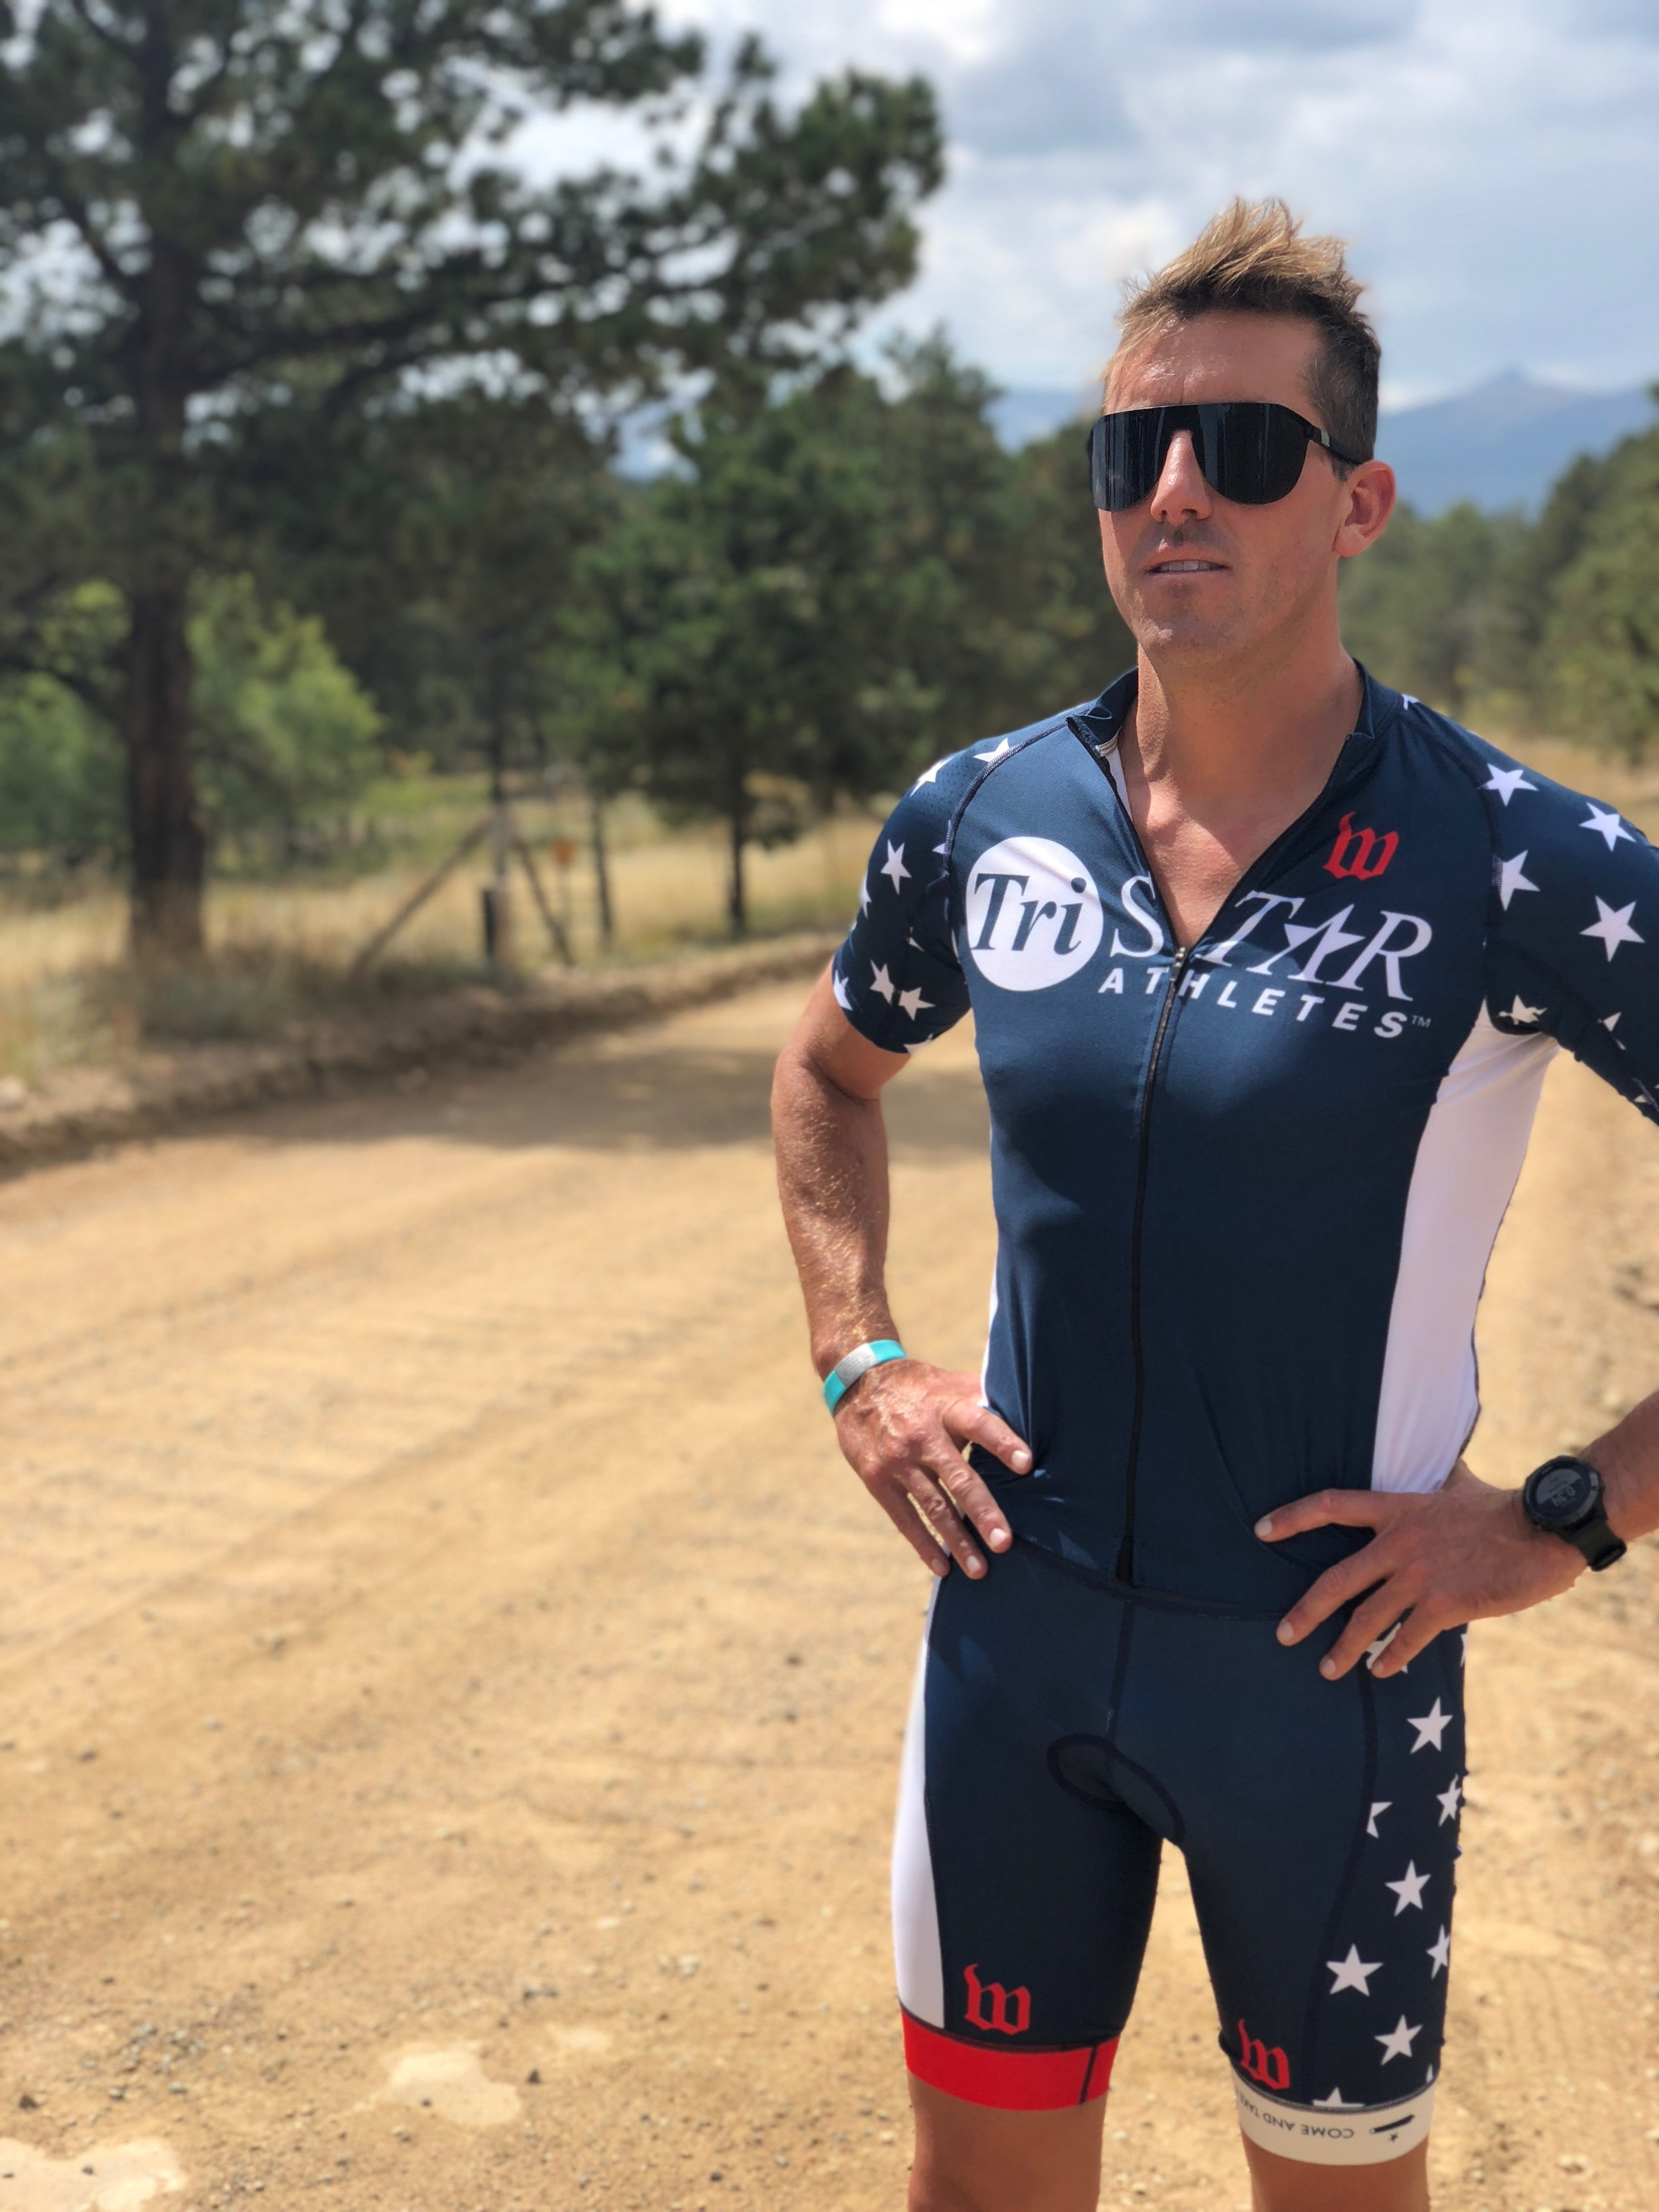 """""""Team motivated and going big in 2019."""" - Adam Daniels, Tristar Athletes Level III coach"""